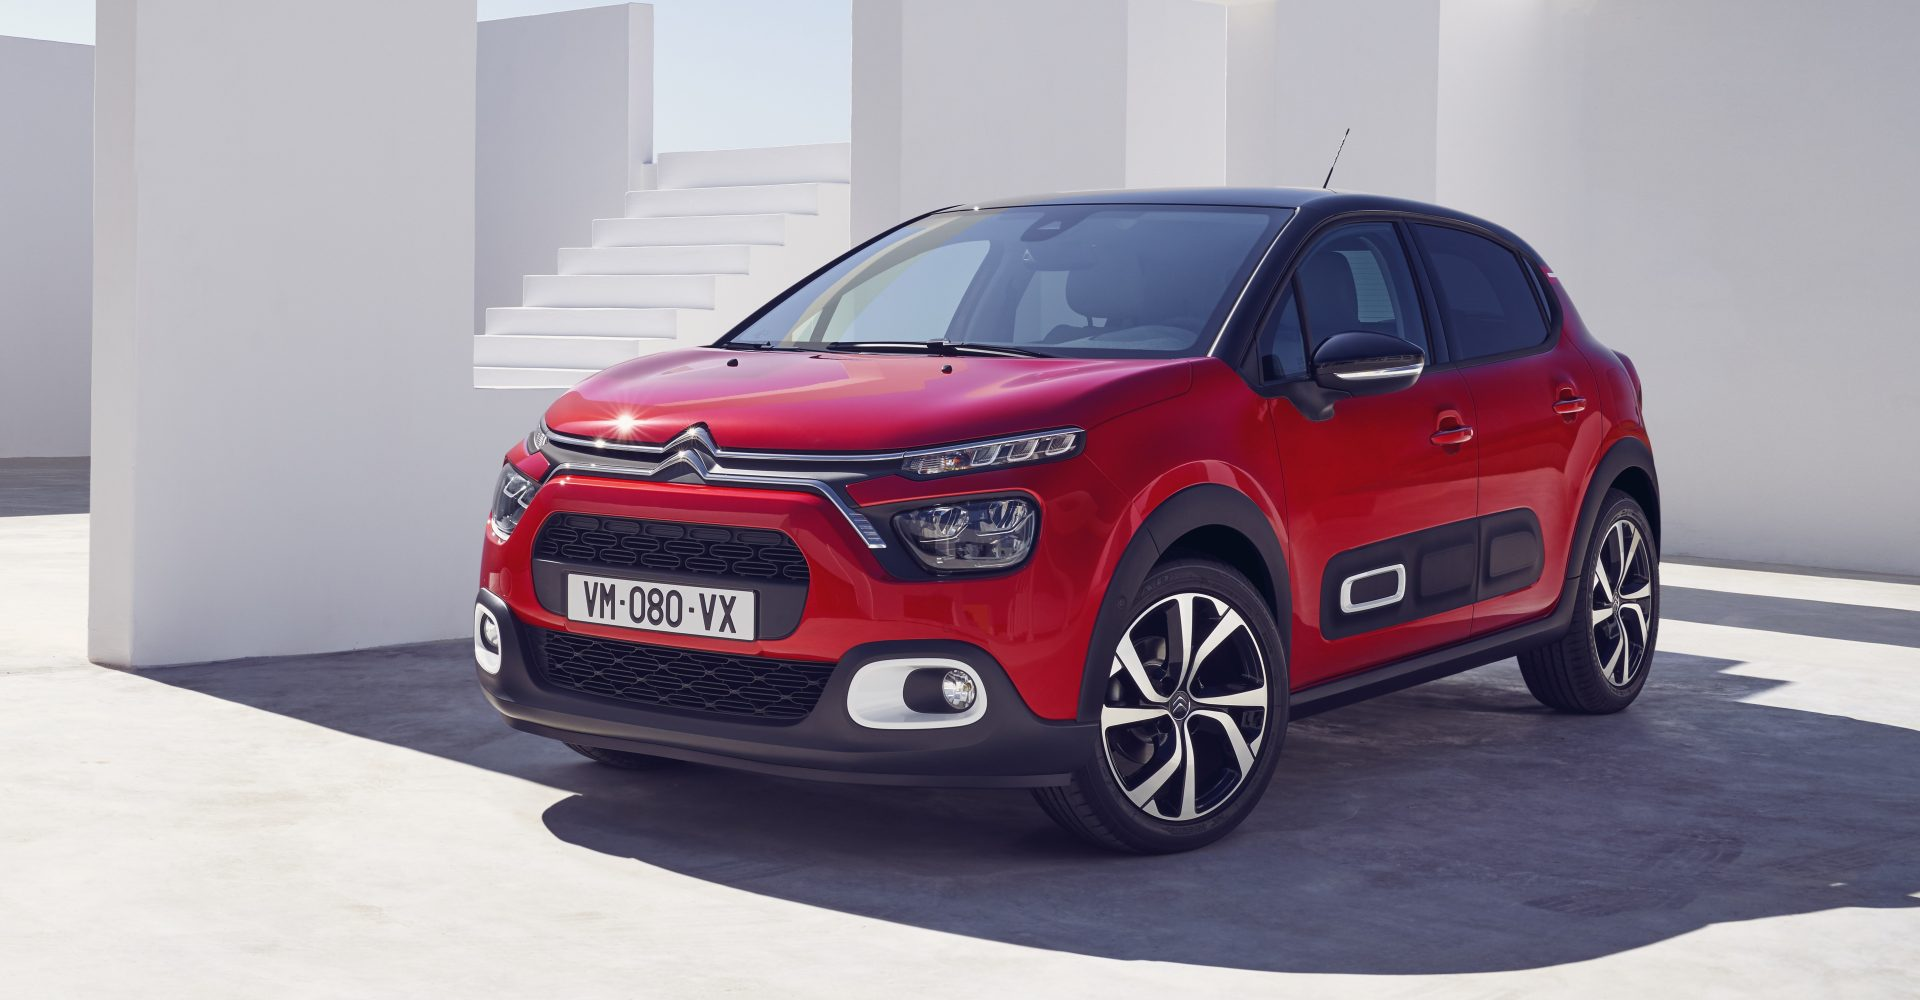 Citroen C3 refreshed with tweaked design